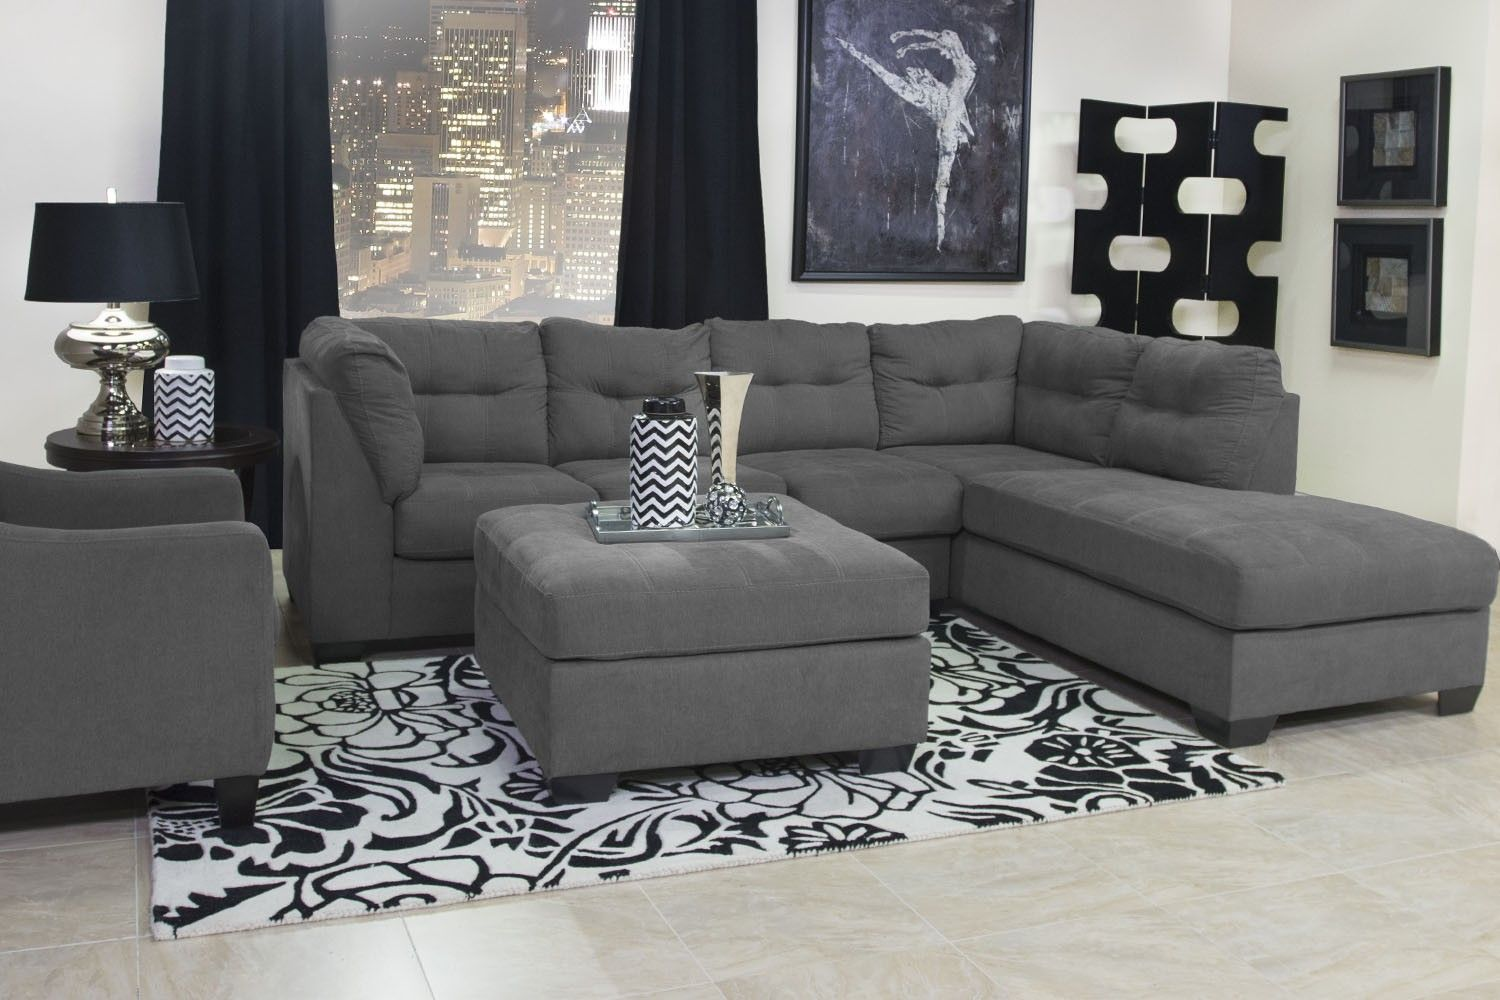 Marvelous Mor Furniture For Less: The Maier Sectional Living Room Part 19